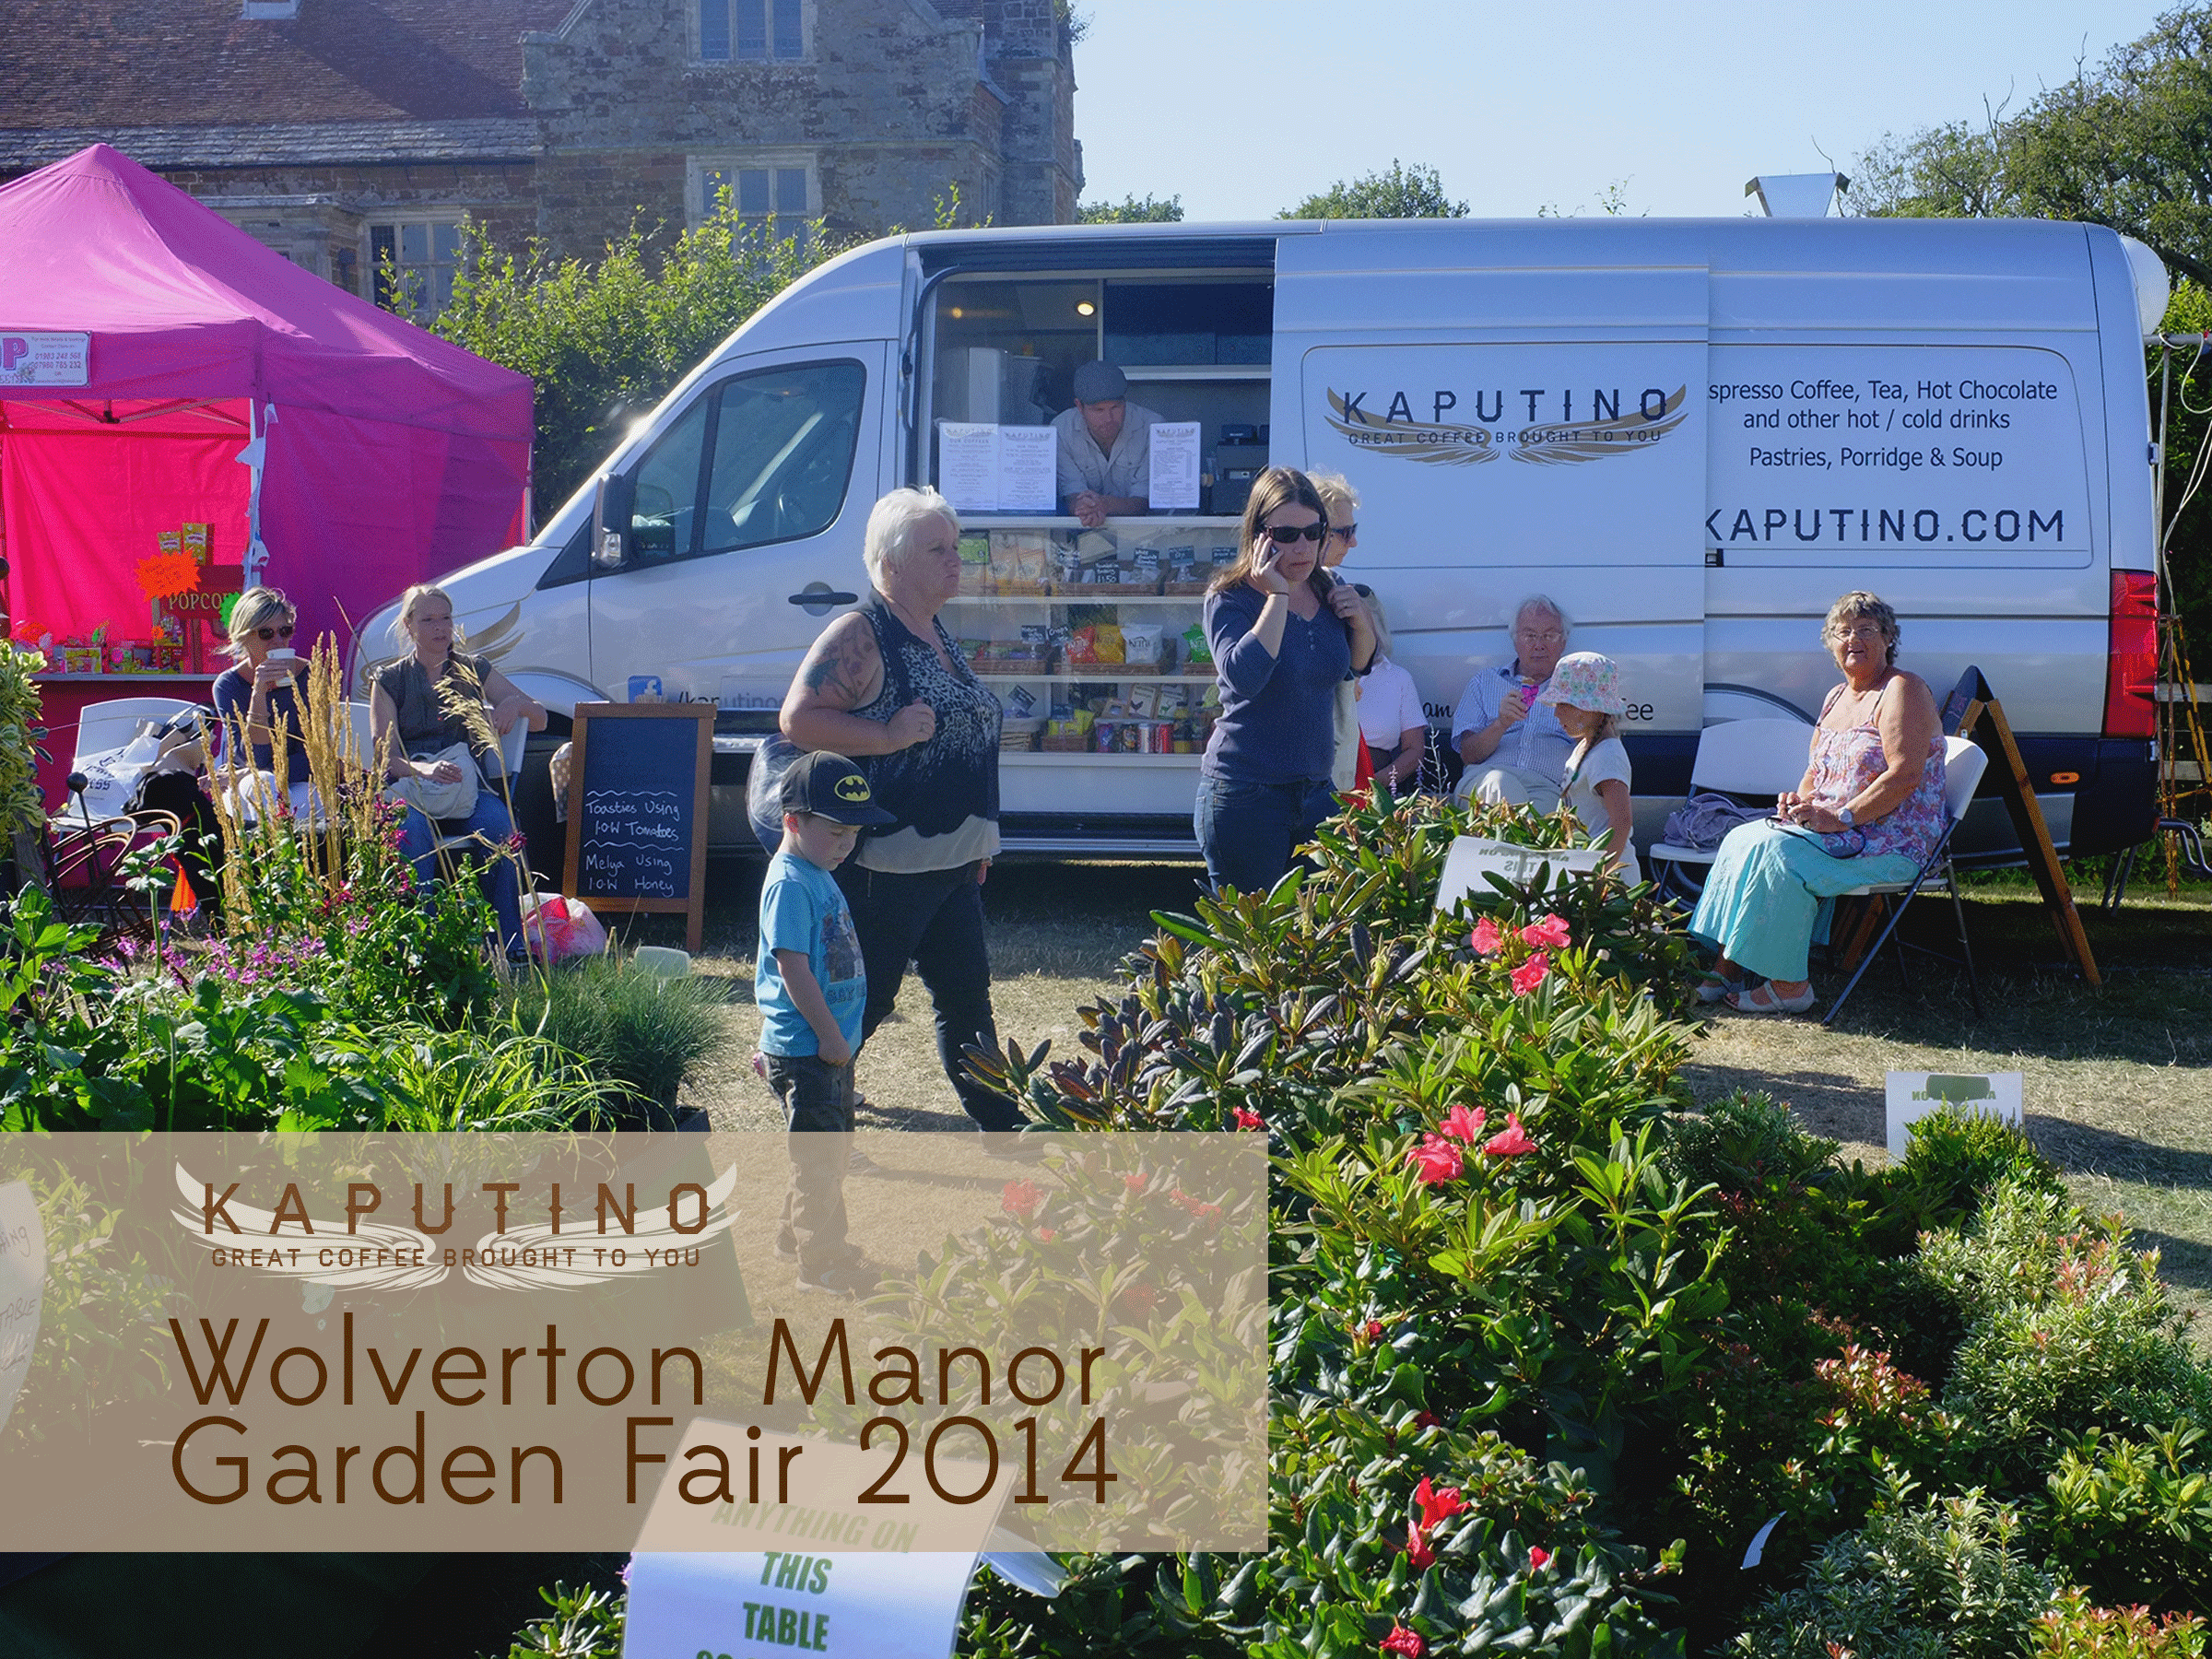 wolverton-manor-garden-fair-2014-with-kaptutino-coffee-van